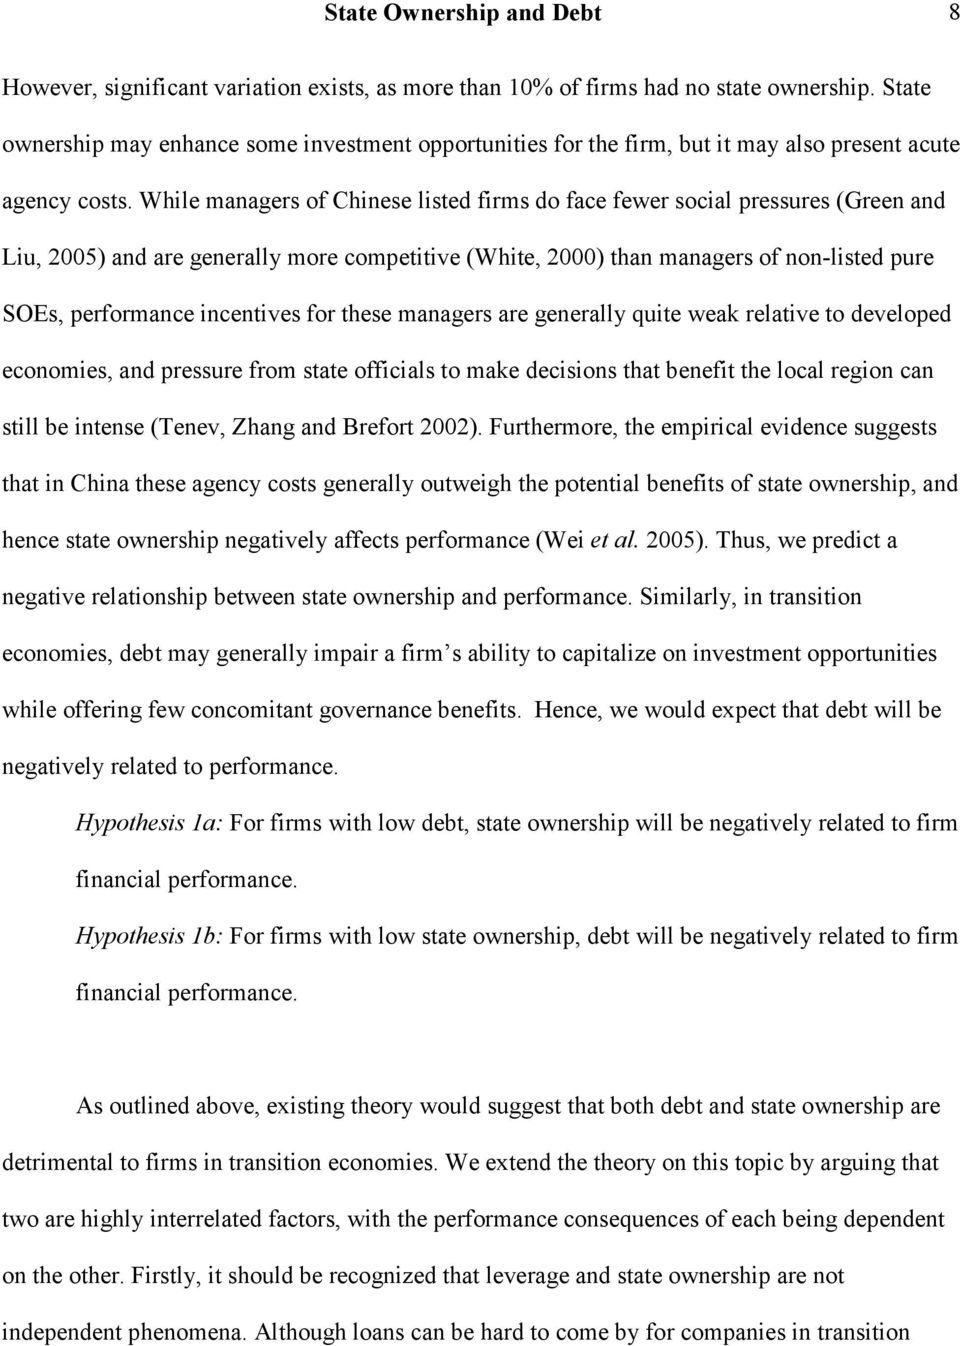 While managers of Chinese listed firms do face fewer social pressures (Green and Liu, 2005) and are generally more competitive (White, 2000) than managers of non-listed pure SOEs, performance